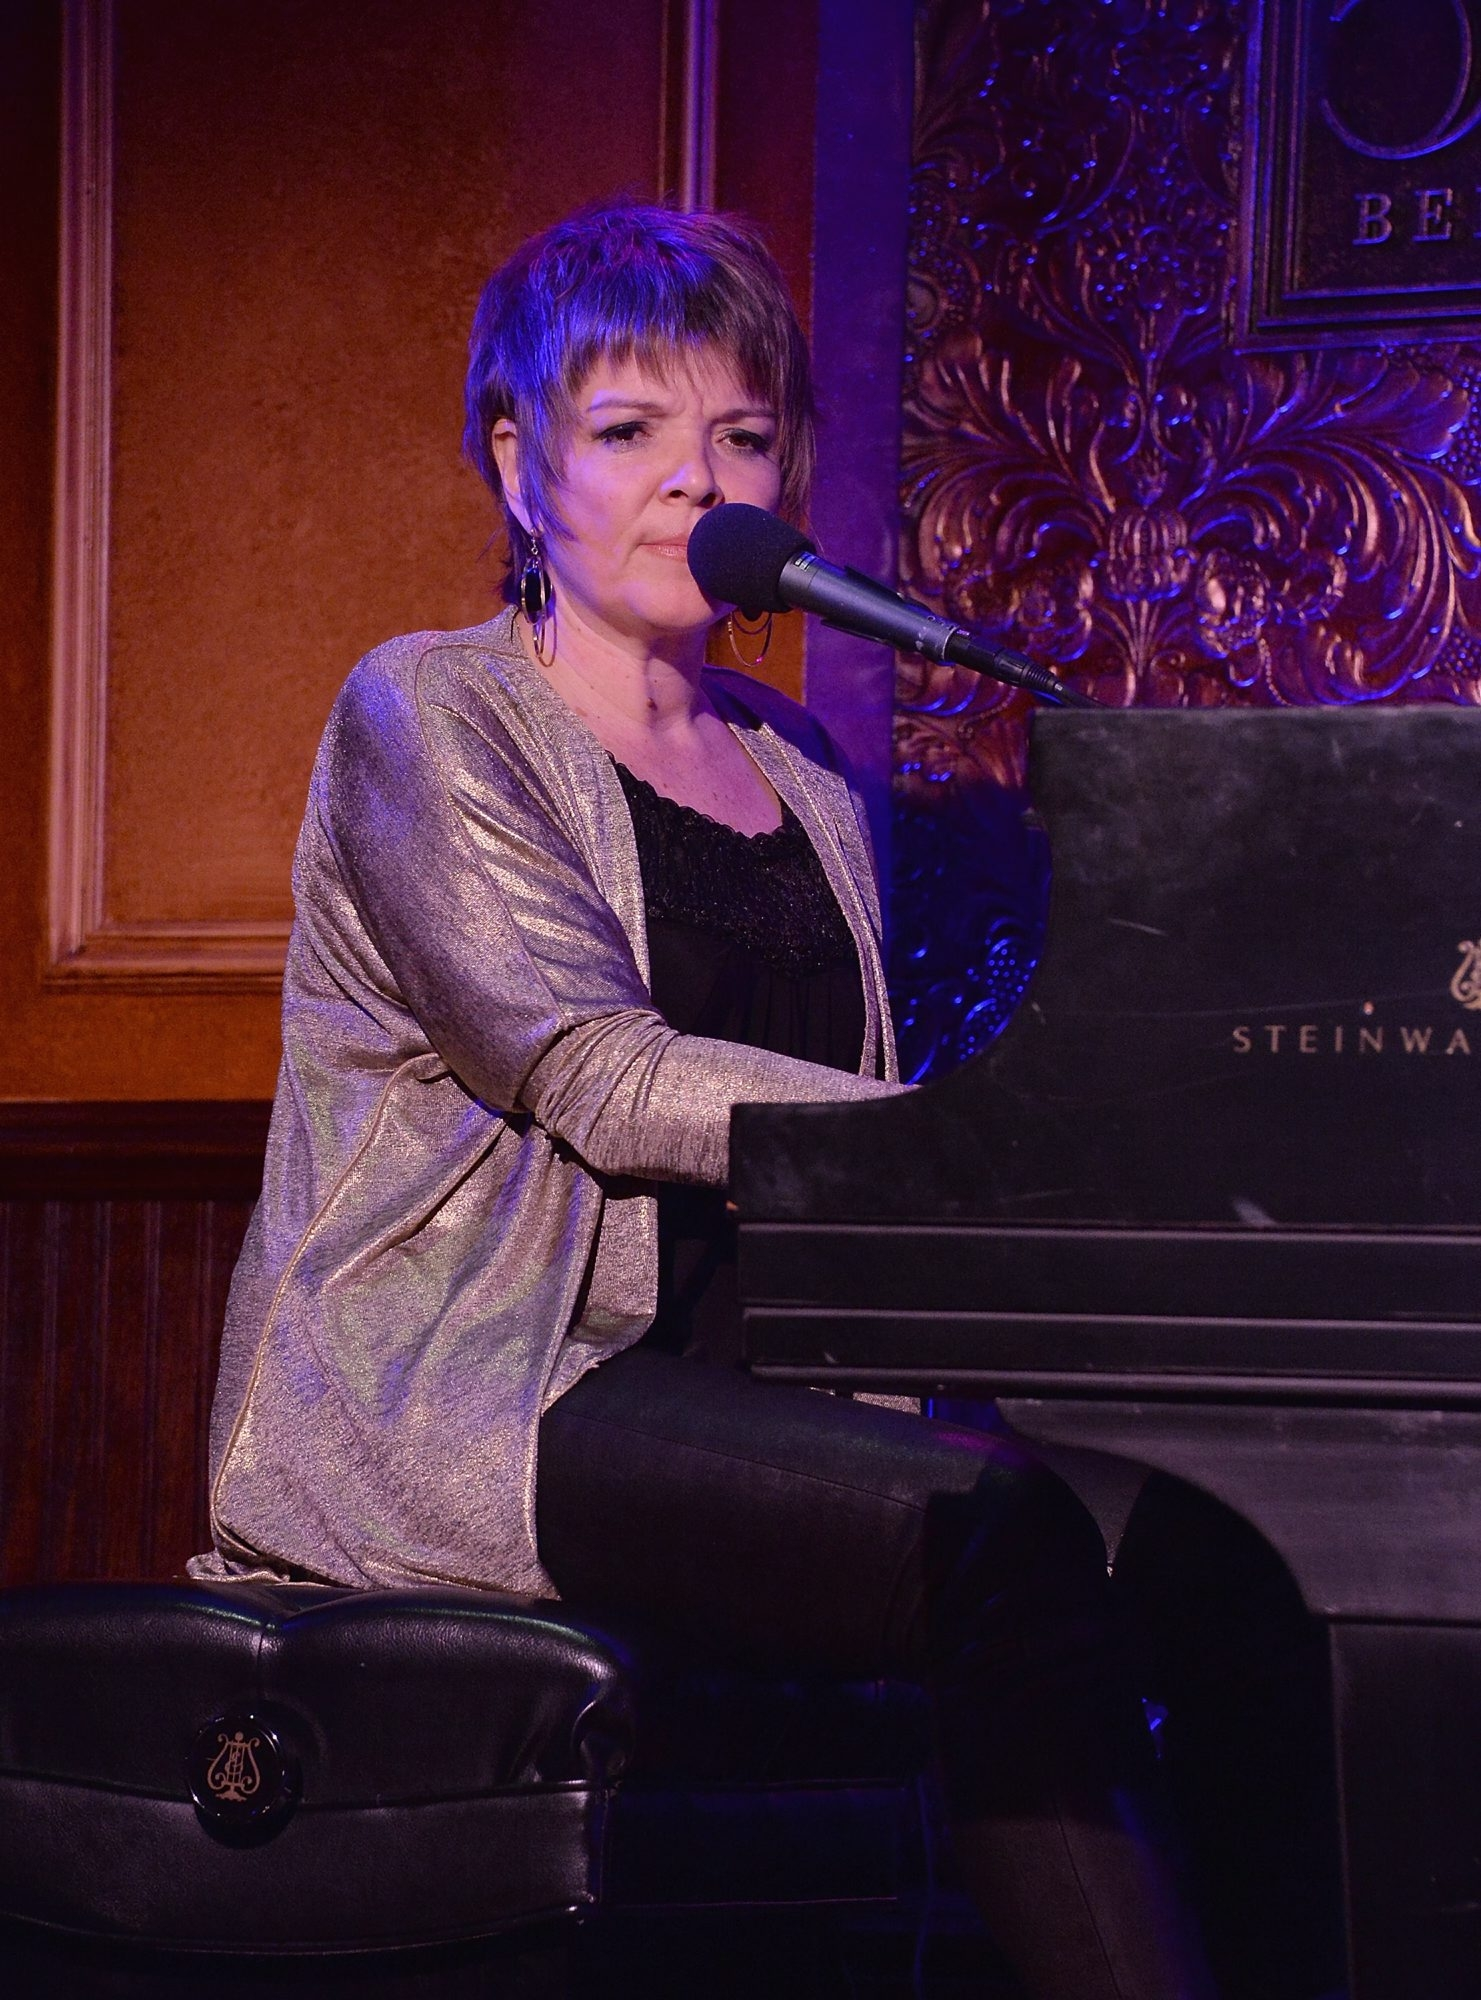 Karrin Allyson released a tribute to Rodgers and Hammerstein last year.